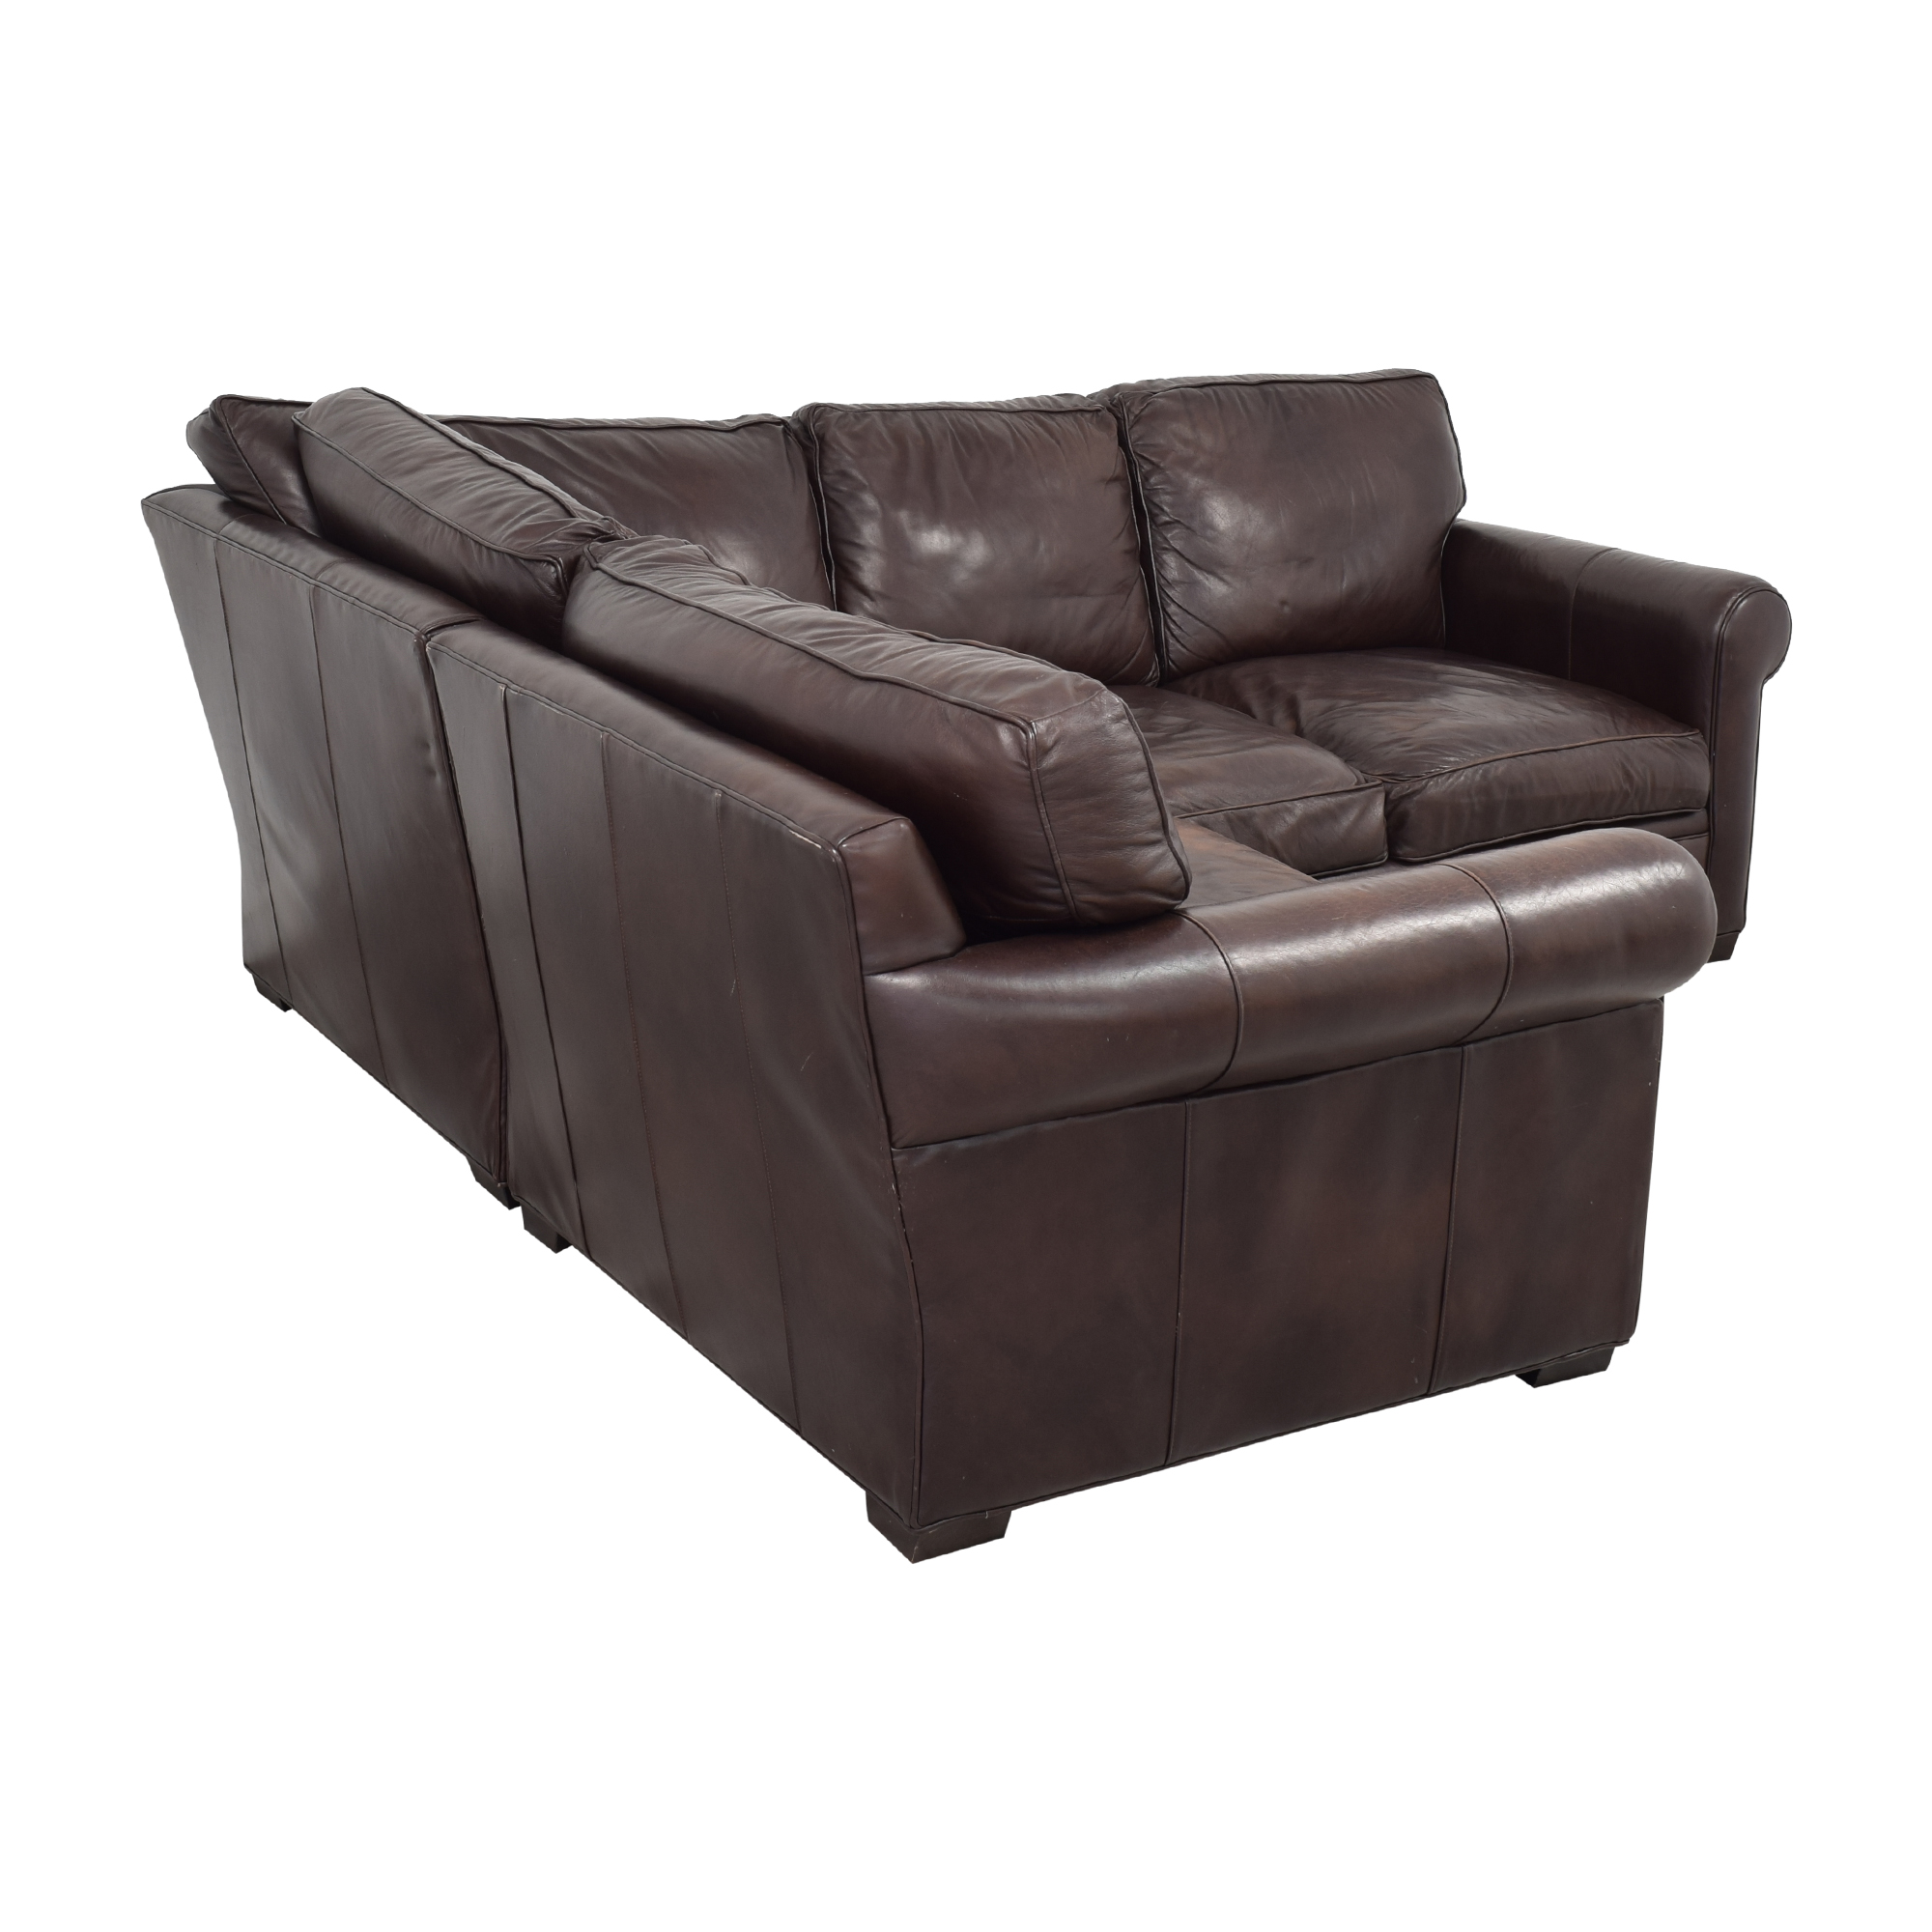 Crate & Barrel L-Shaped Sectional Sofa / Sectionals